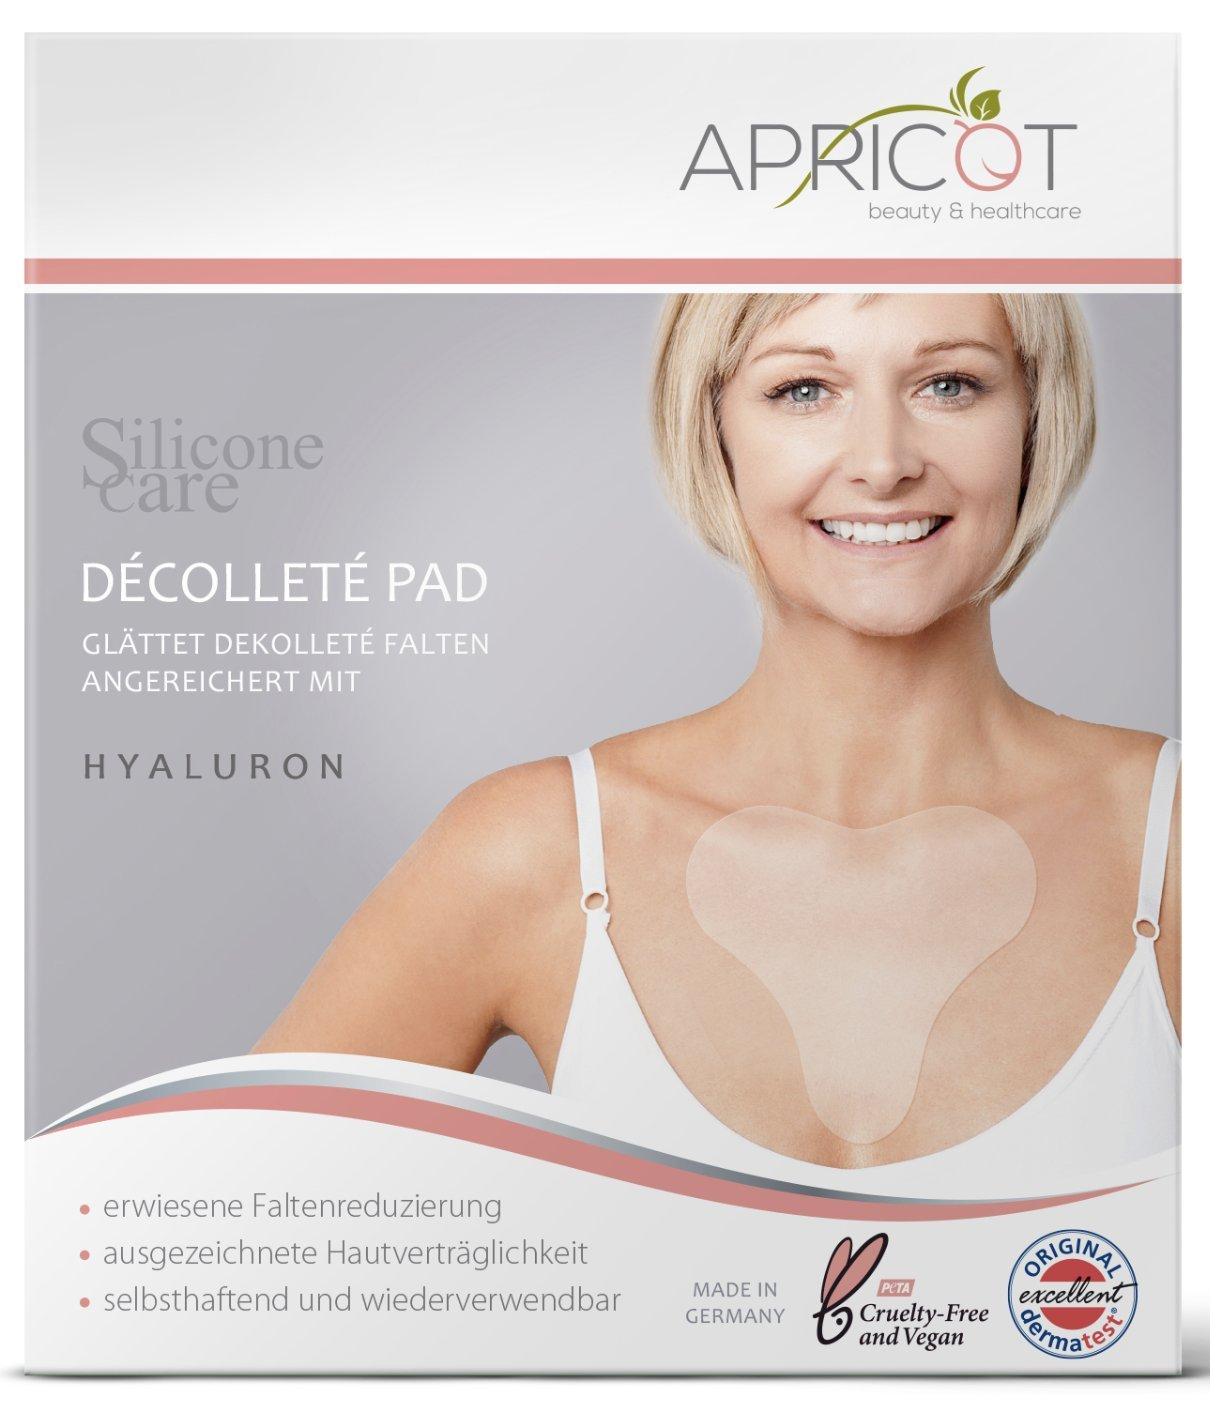 71793ad734005 NEW Silicone care Premium Décolleté Pad with Hyaluron! Original APRICOT  Product